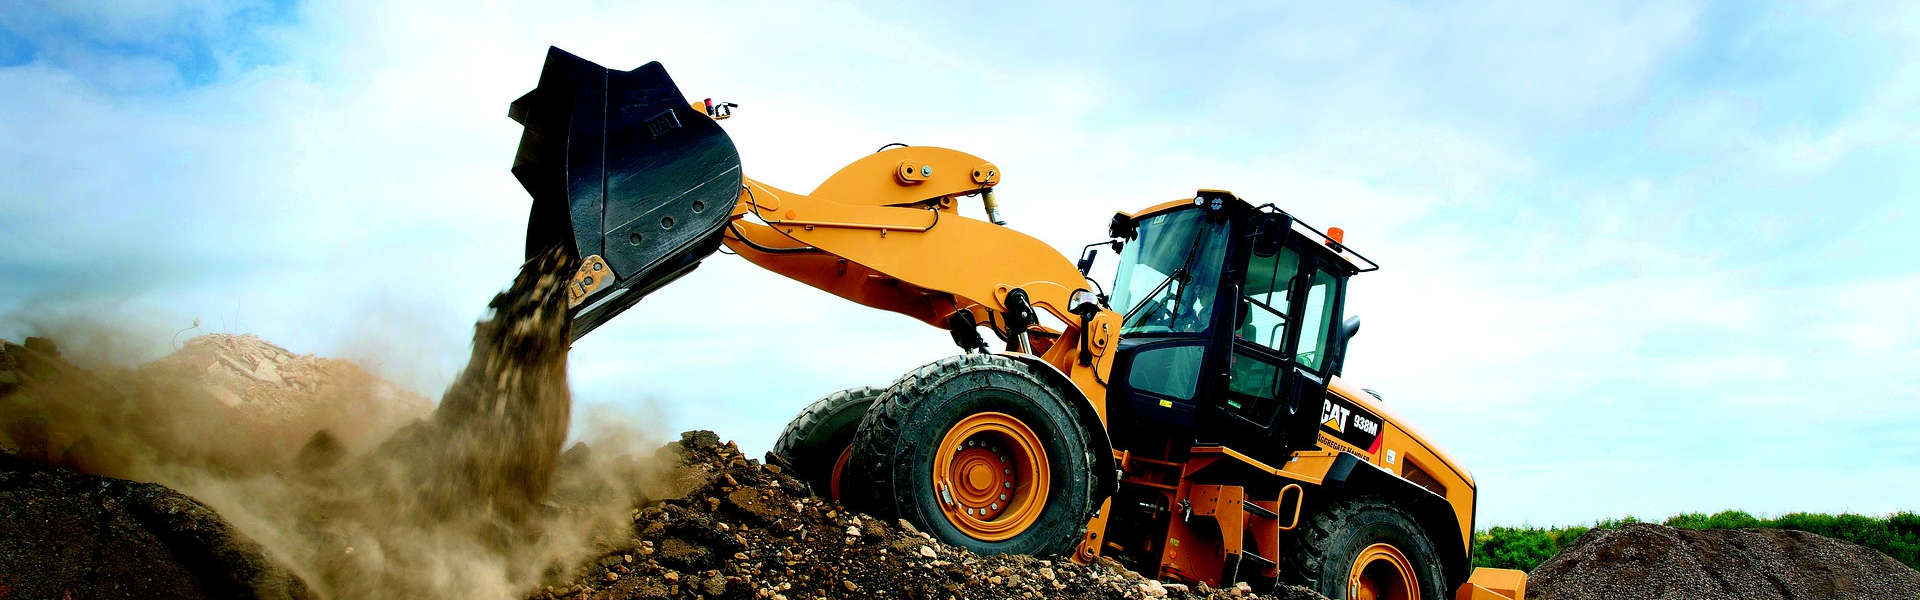 Excavator rentals in Dallas, Lewisville, The Colony, Carrollton, Denton, Richardson, Flower Mound, Frisco, & Addison